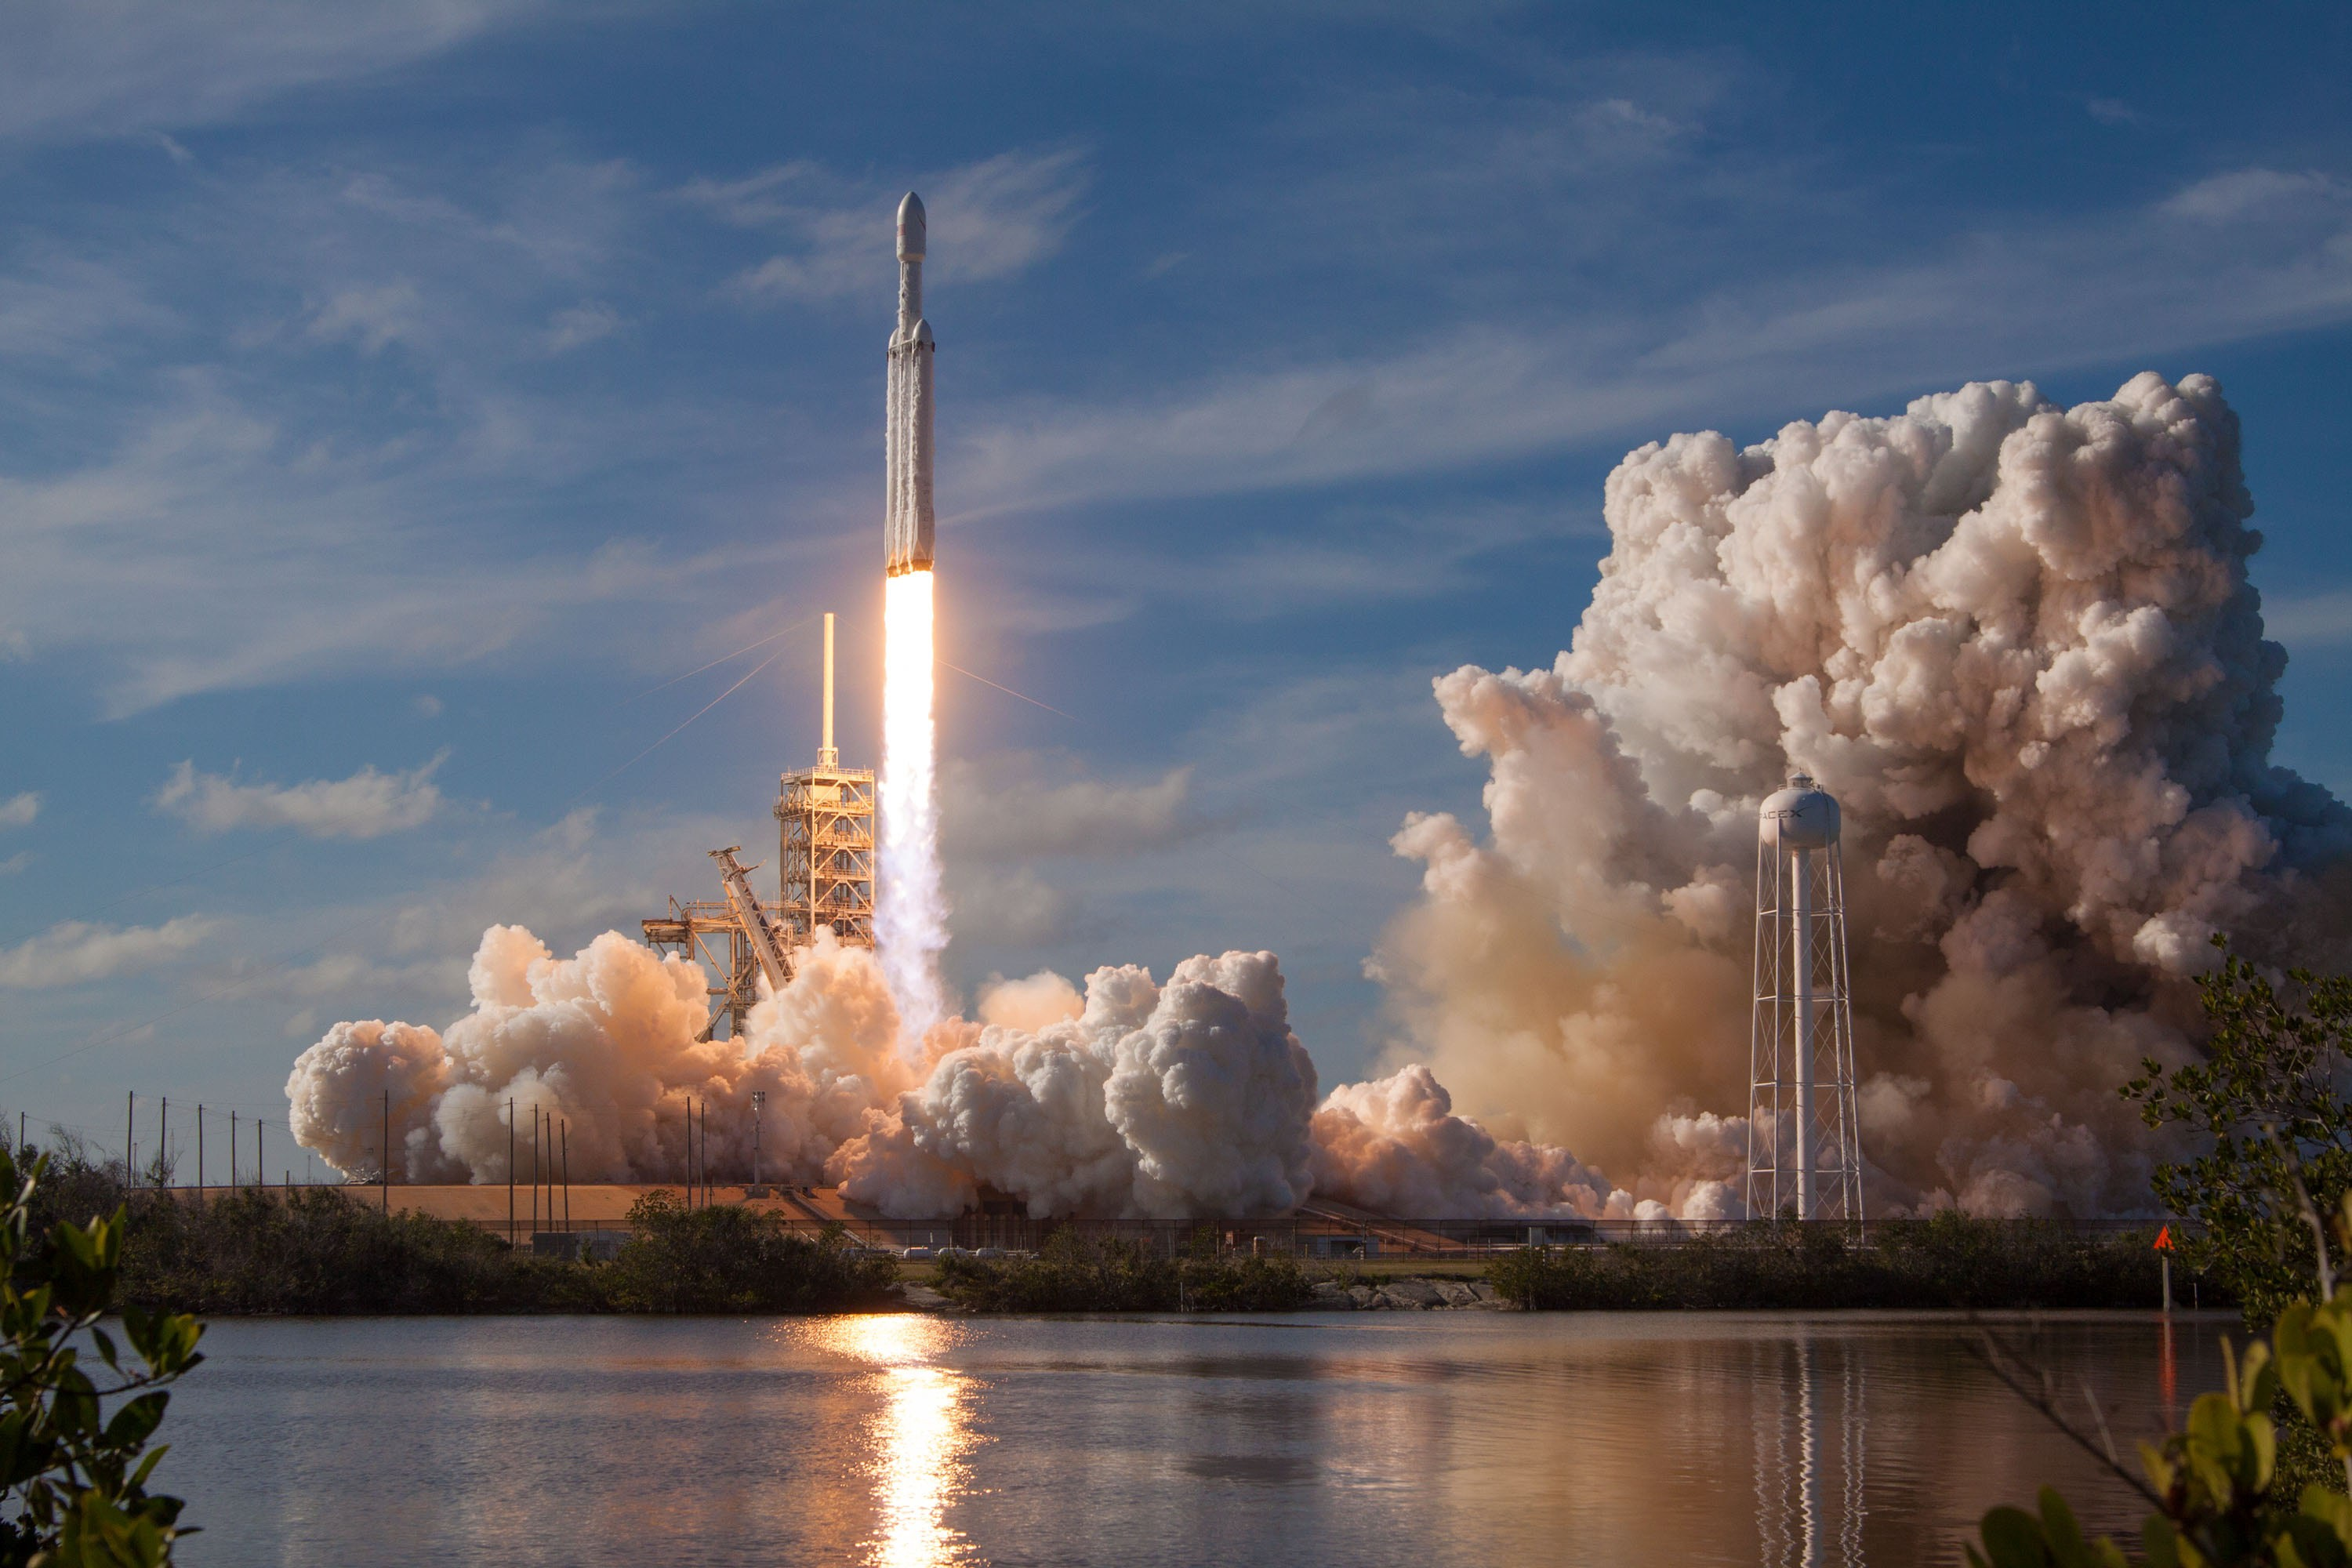 rocket-taking off from launch pad